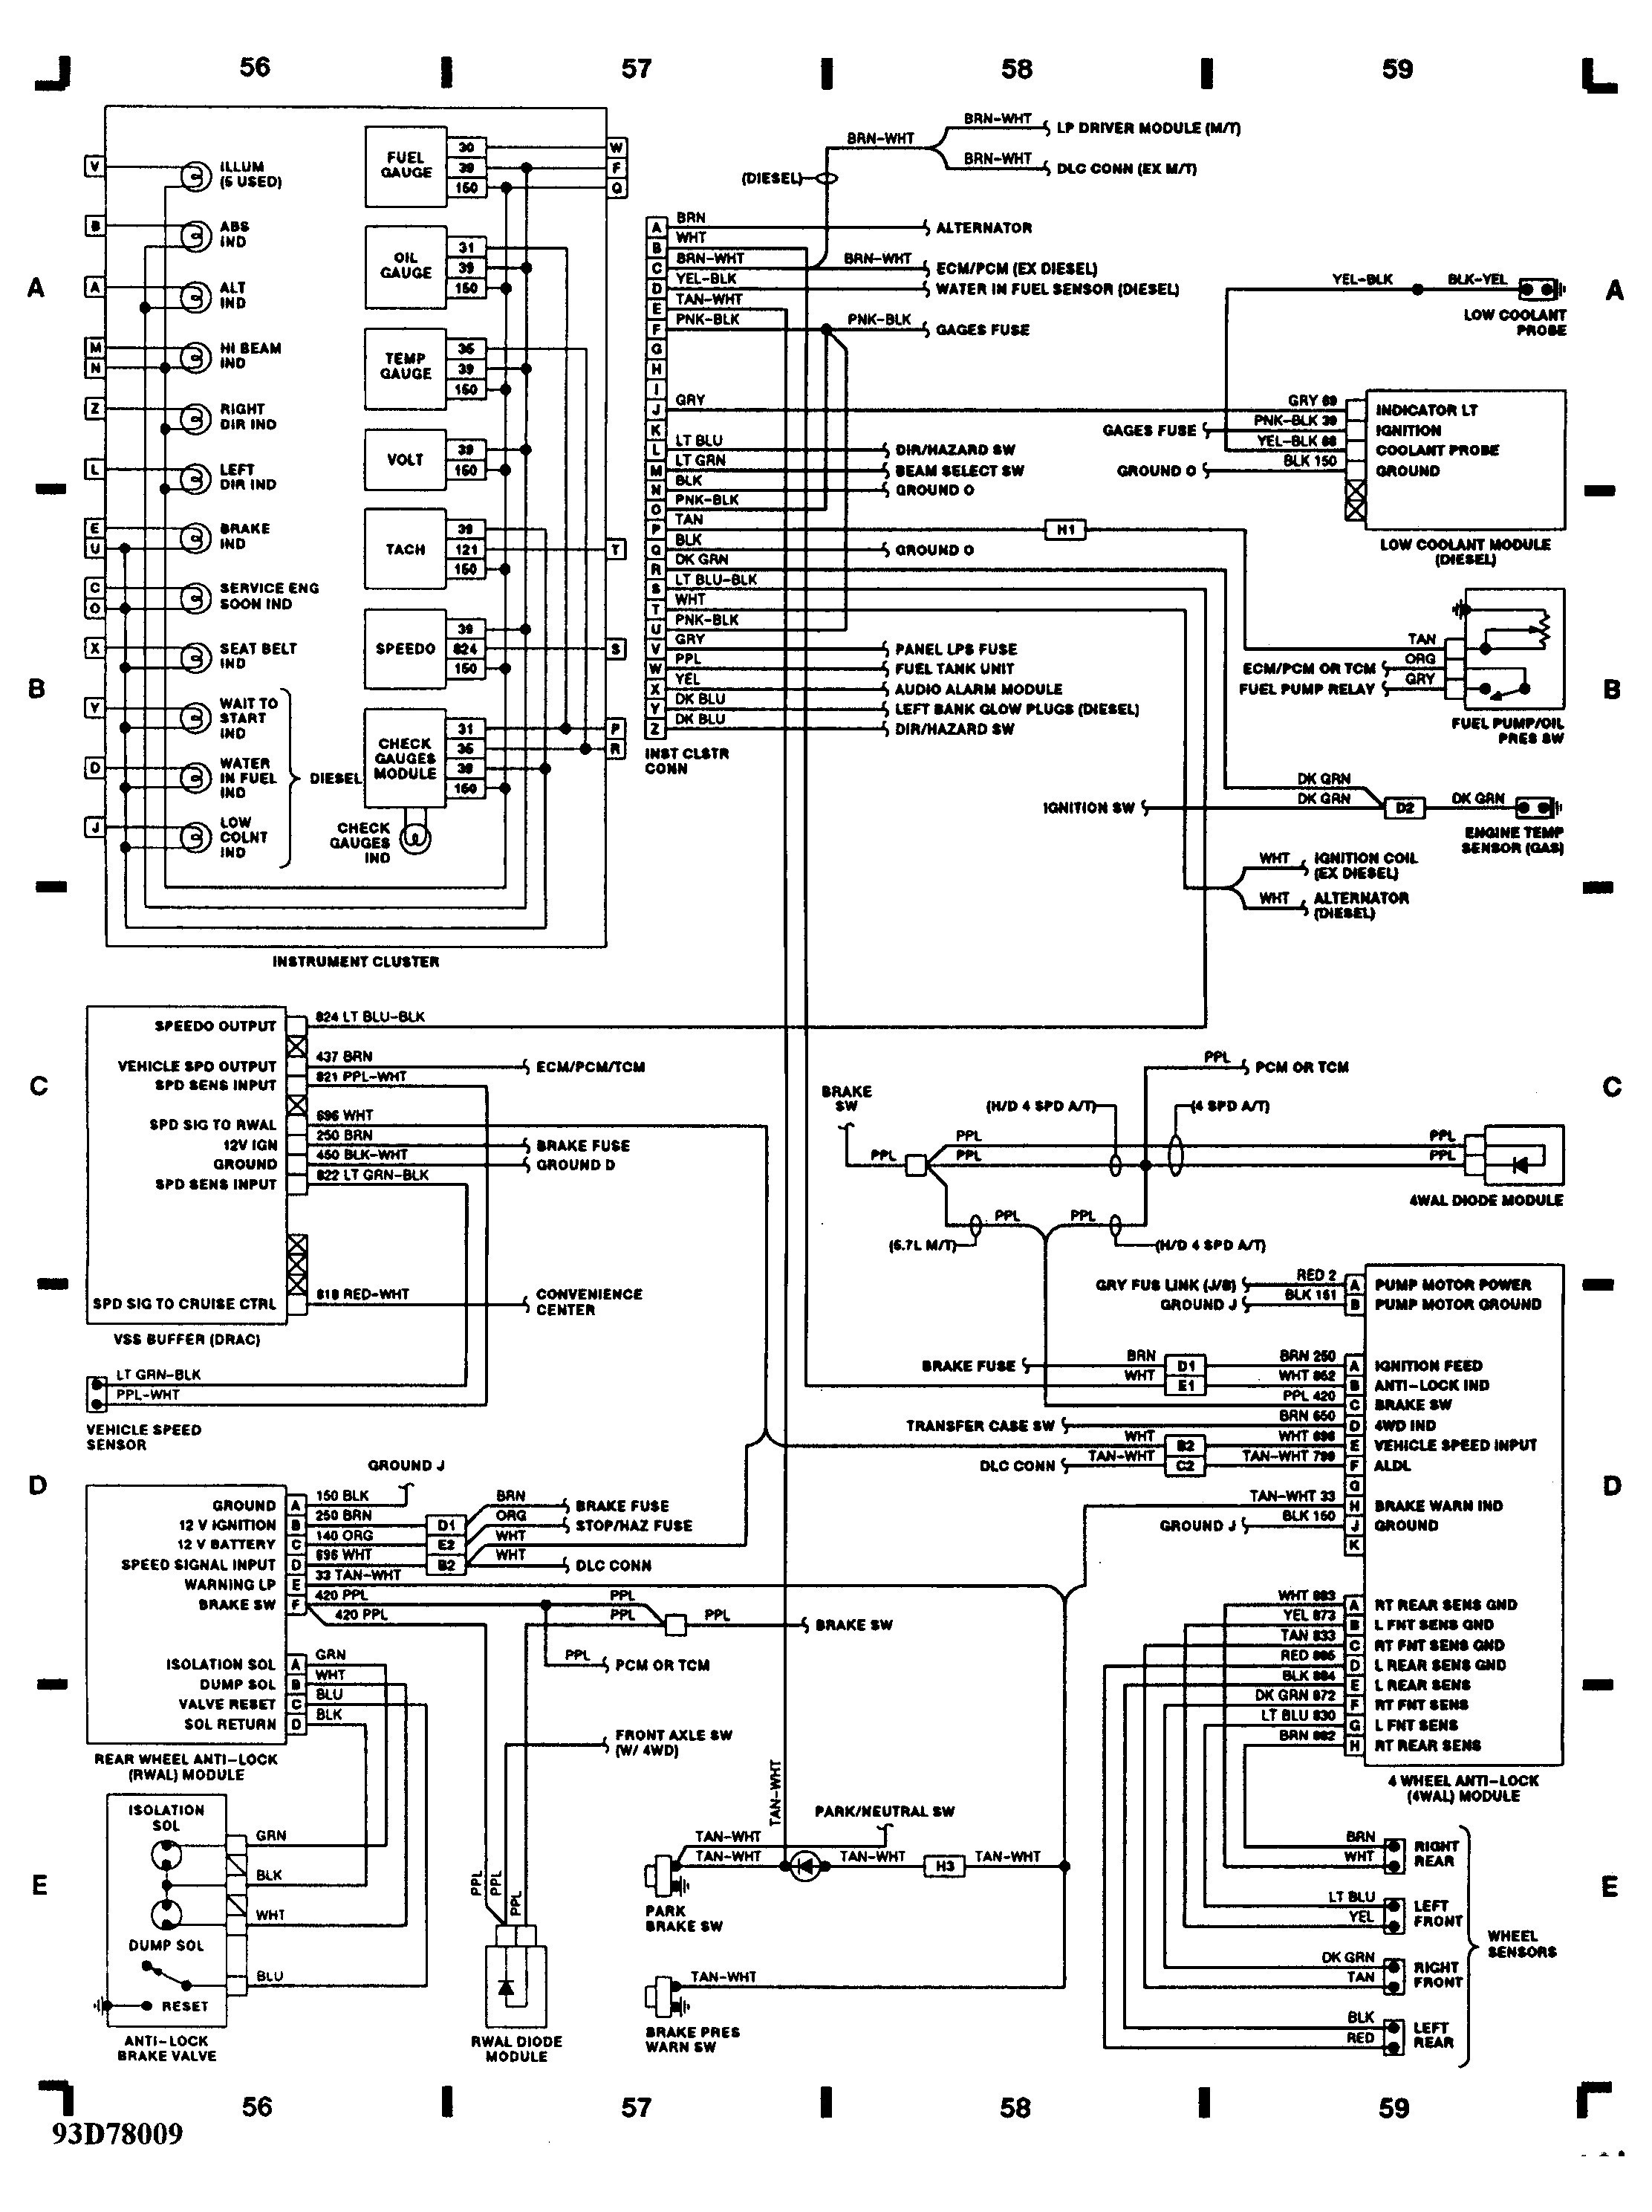 1990 toyota Pickup Engine Diagram 2002 Ls1 Engine Diagram Another Blog About Wiring Diagram • Of 1990 toyota Pickup Engine Diagram